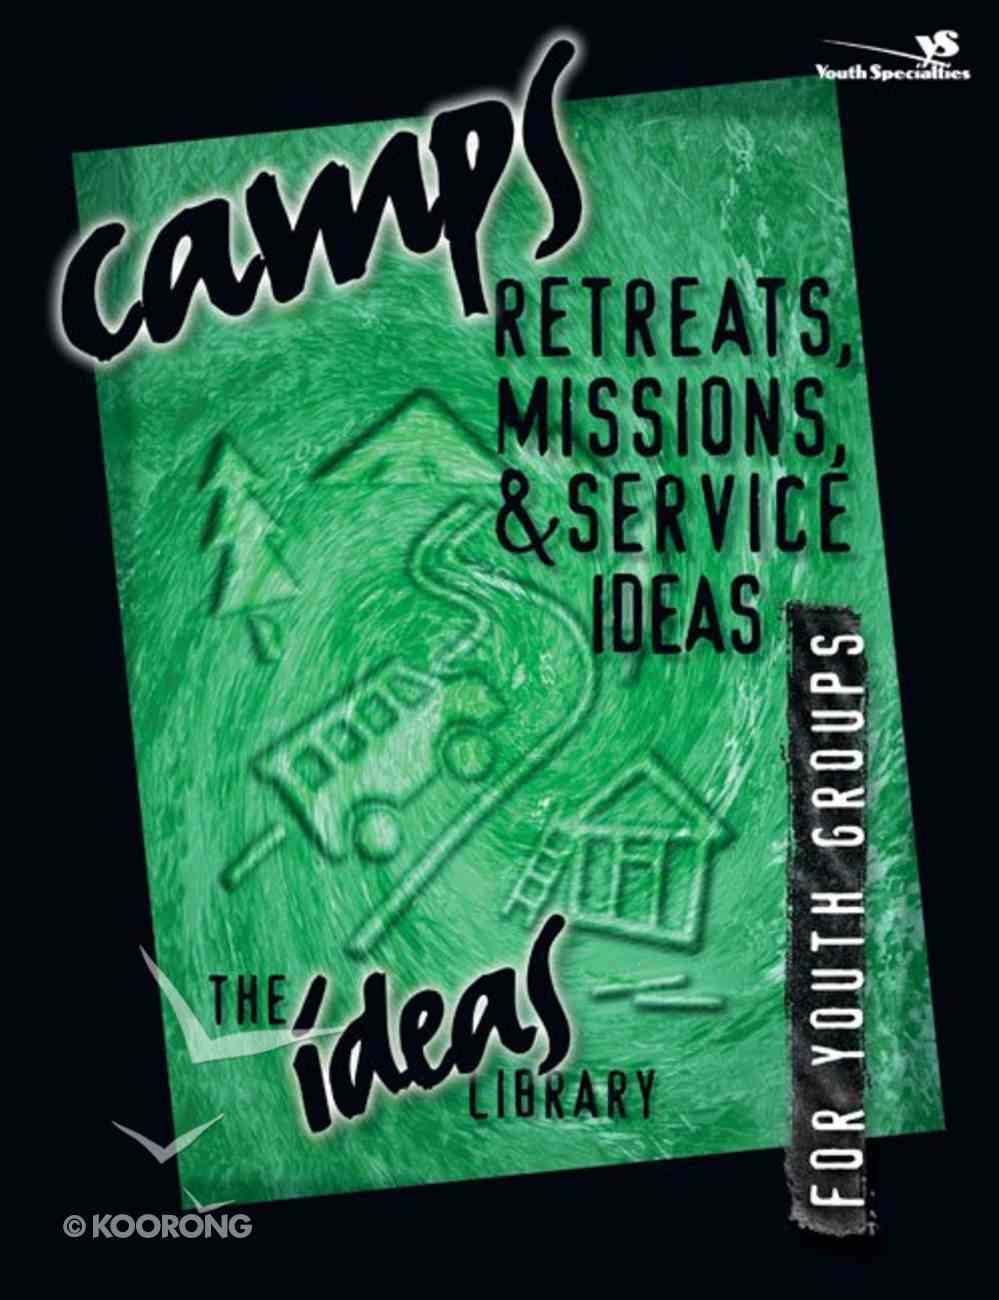 Ideas Library: Camps Retreats Missions & Service Ideas Paperback